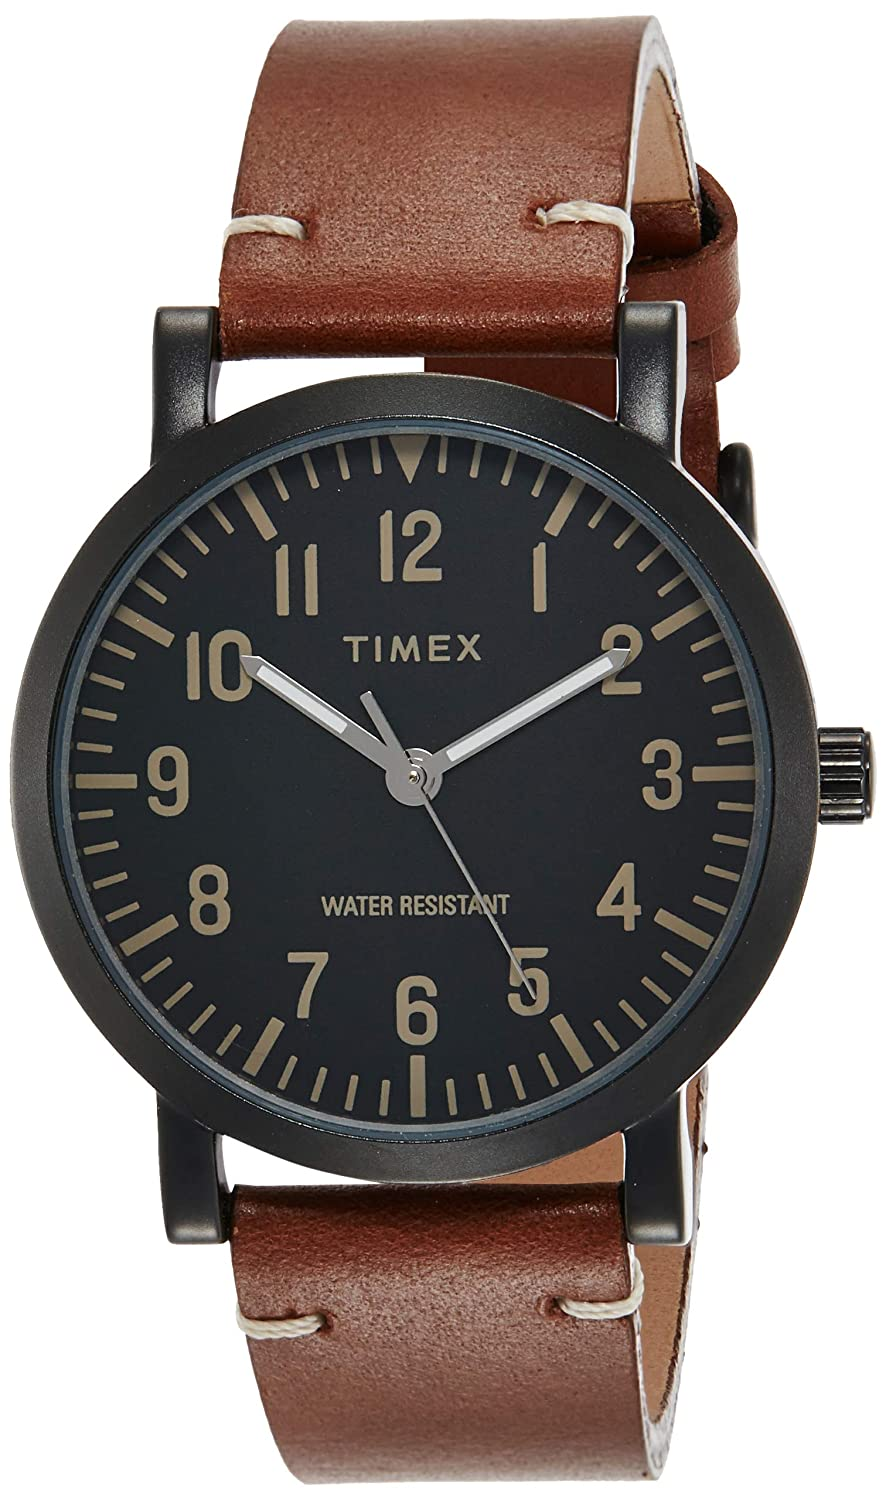 Timex Best Watches For Teenage Boys in India